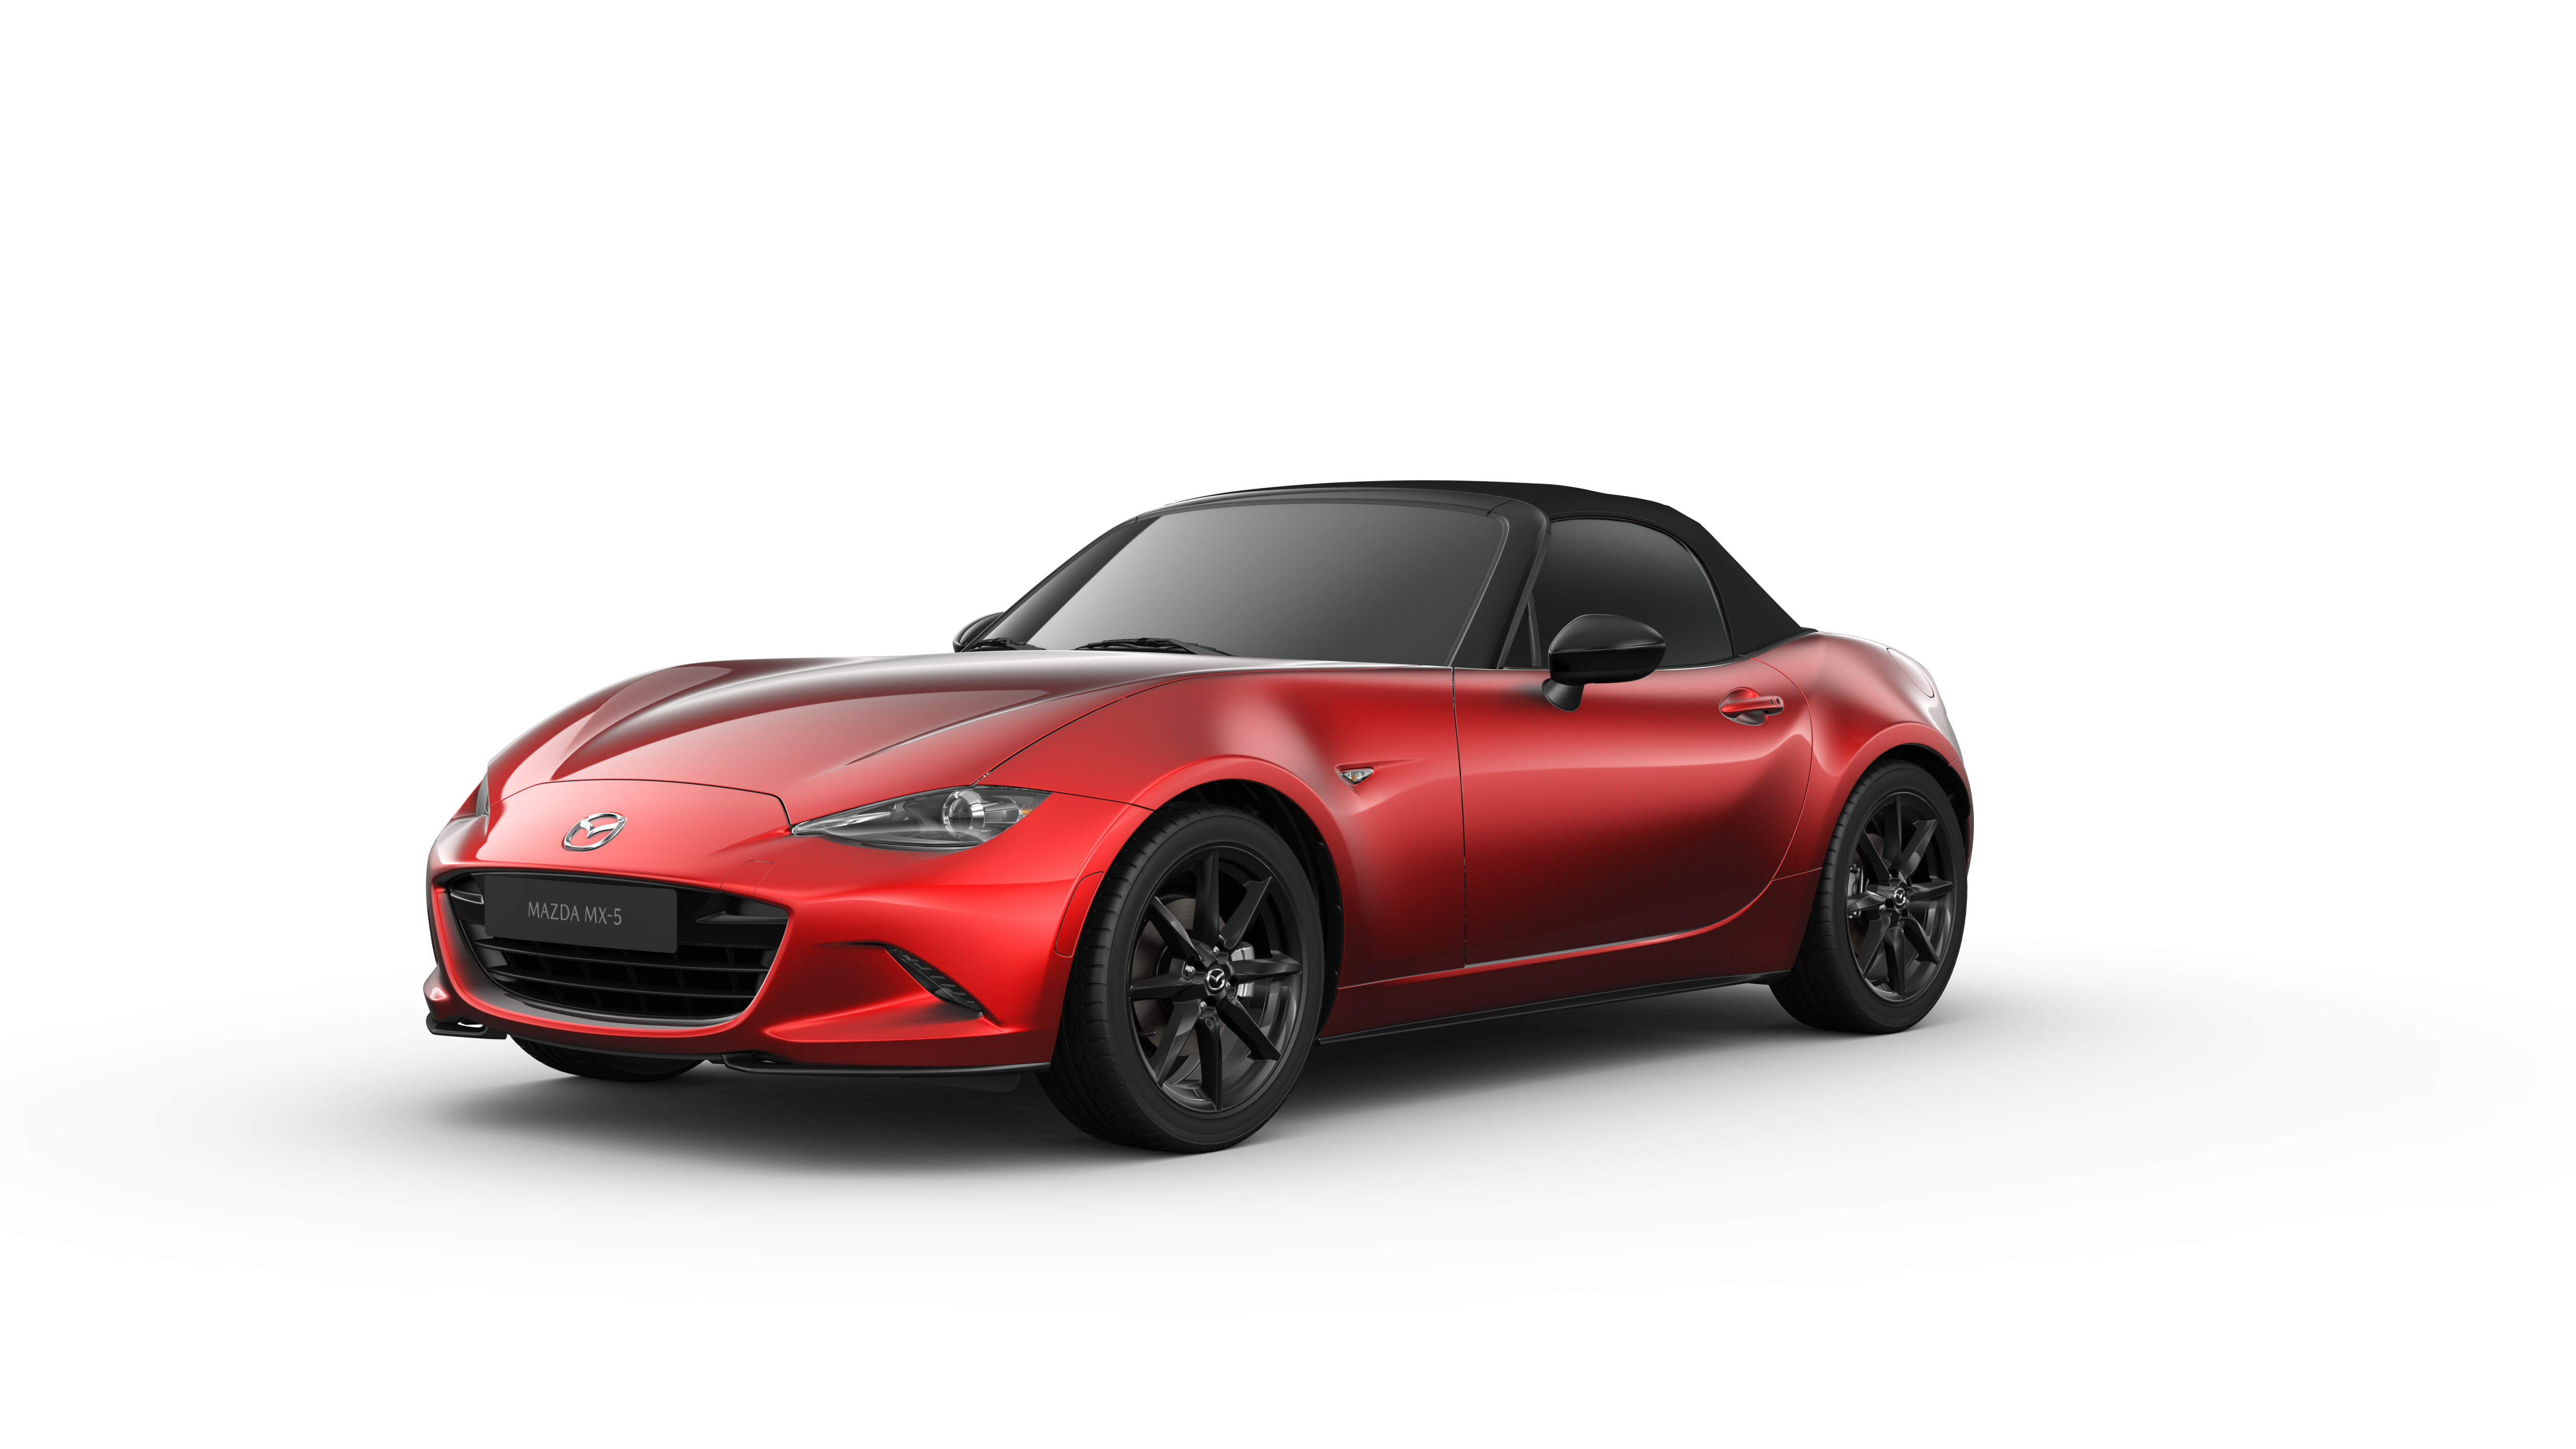 mx-5_ndl7_nf7jlaa_46v_nk5_ext_high_trans